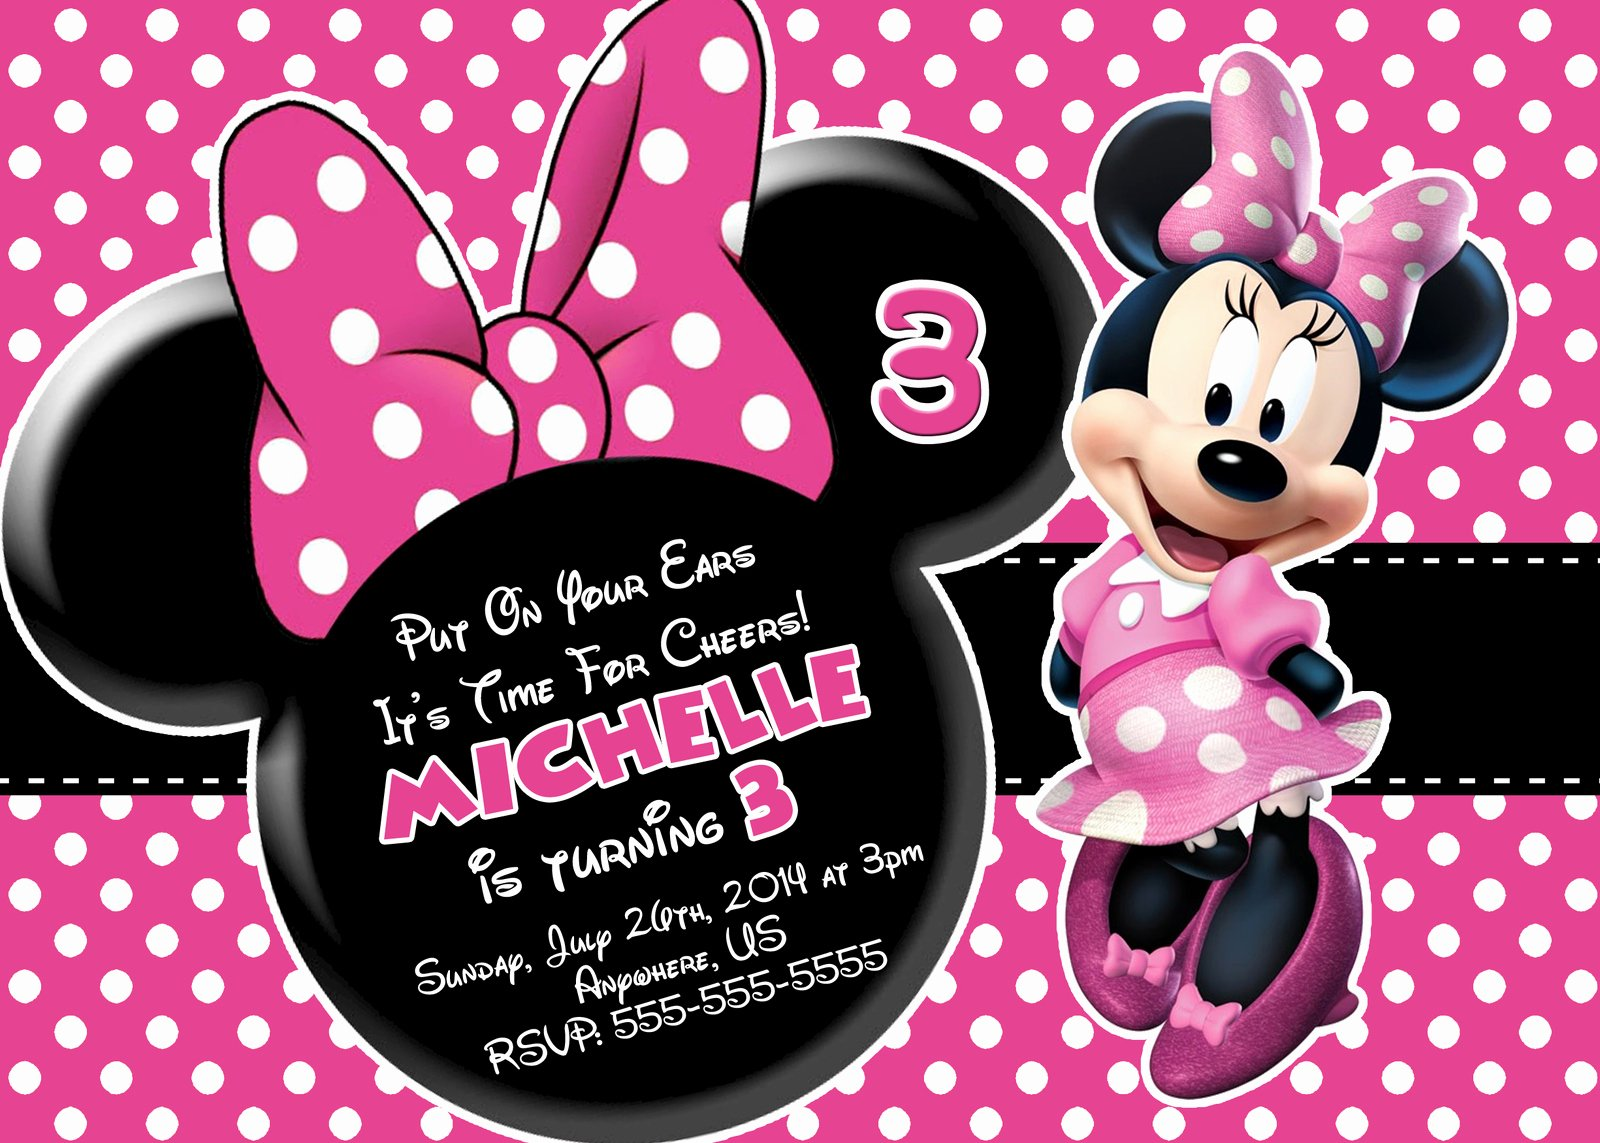 Minnie Mouse Invitation Wording New Free Minnie Mouse Printable Birthday Invitations